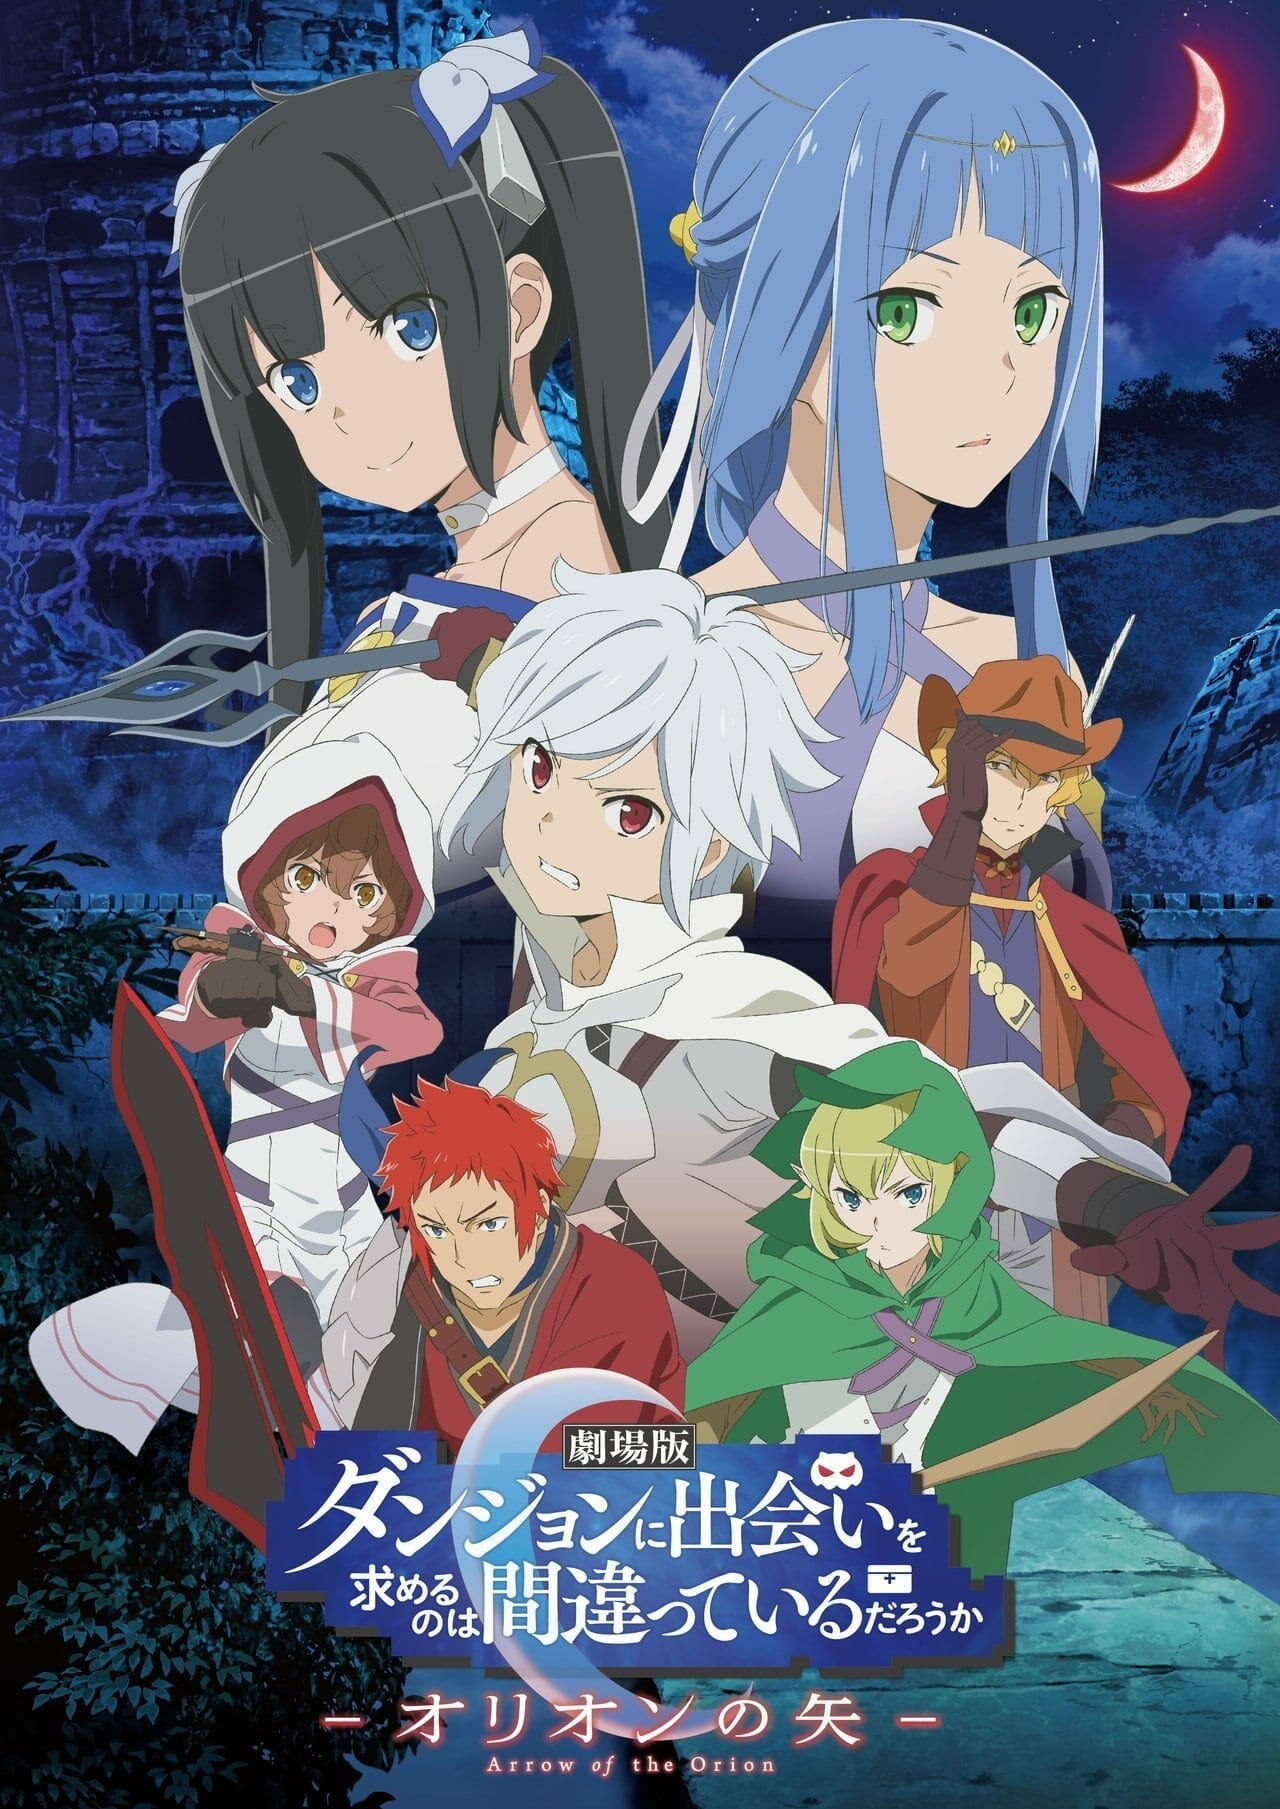 Danmachi new movie poster visual